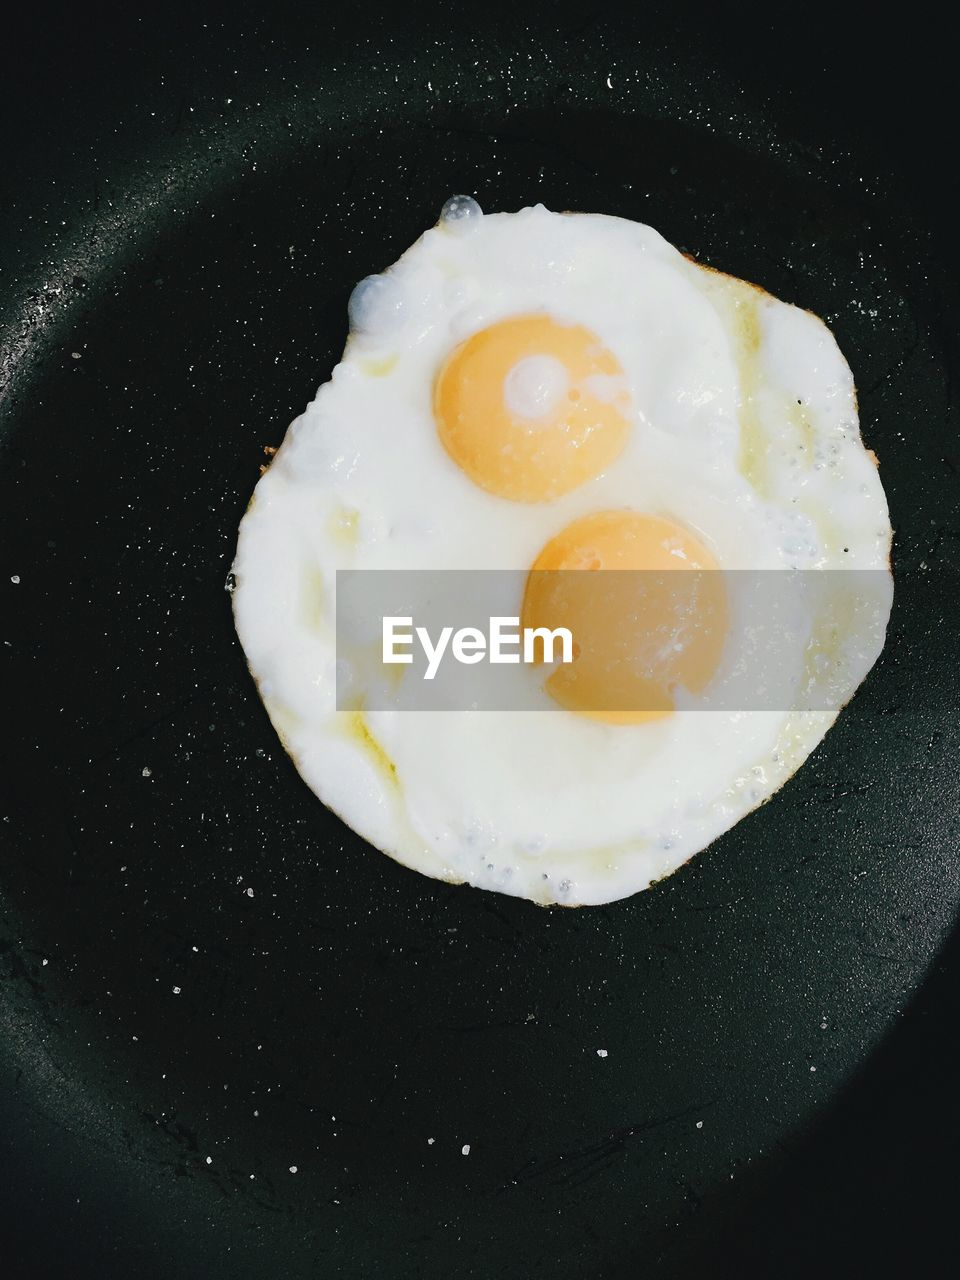 food, fried egg, food and drink, fried, pan, healthy eating, ready-to-eat, egg, egg yolk, frying pan, kitchen utensil, wellbeing, freshness, meal, indoors, no people, directly above, breakfast, cooking pan, still life, preparation, sunny side up, temptation